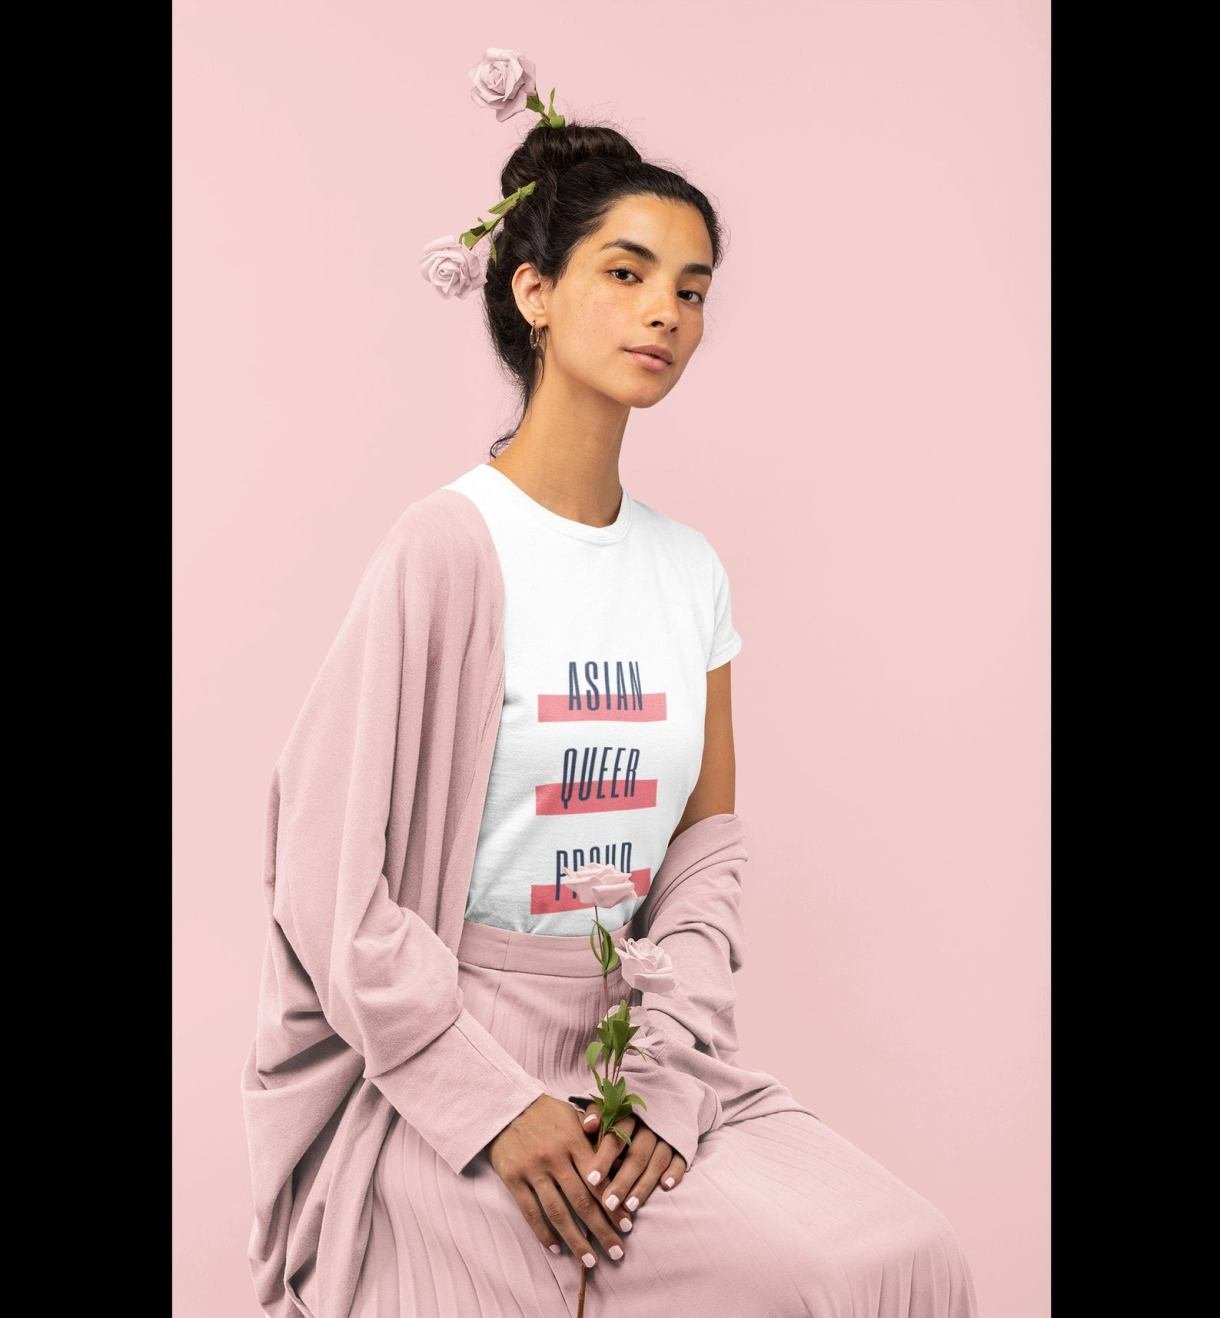 model in a white t-shirt that says ASIAN QUEER PROUD in block letters with red striped styling behind each word. Model is wearing pink pants and a pink cardigan and holding a pink rose.